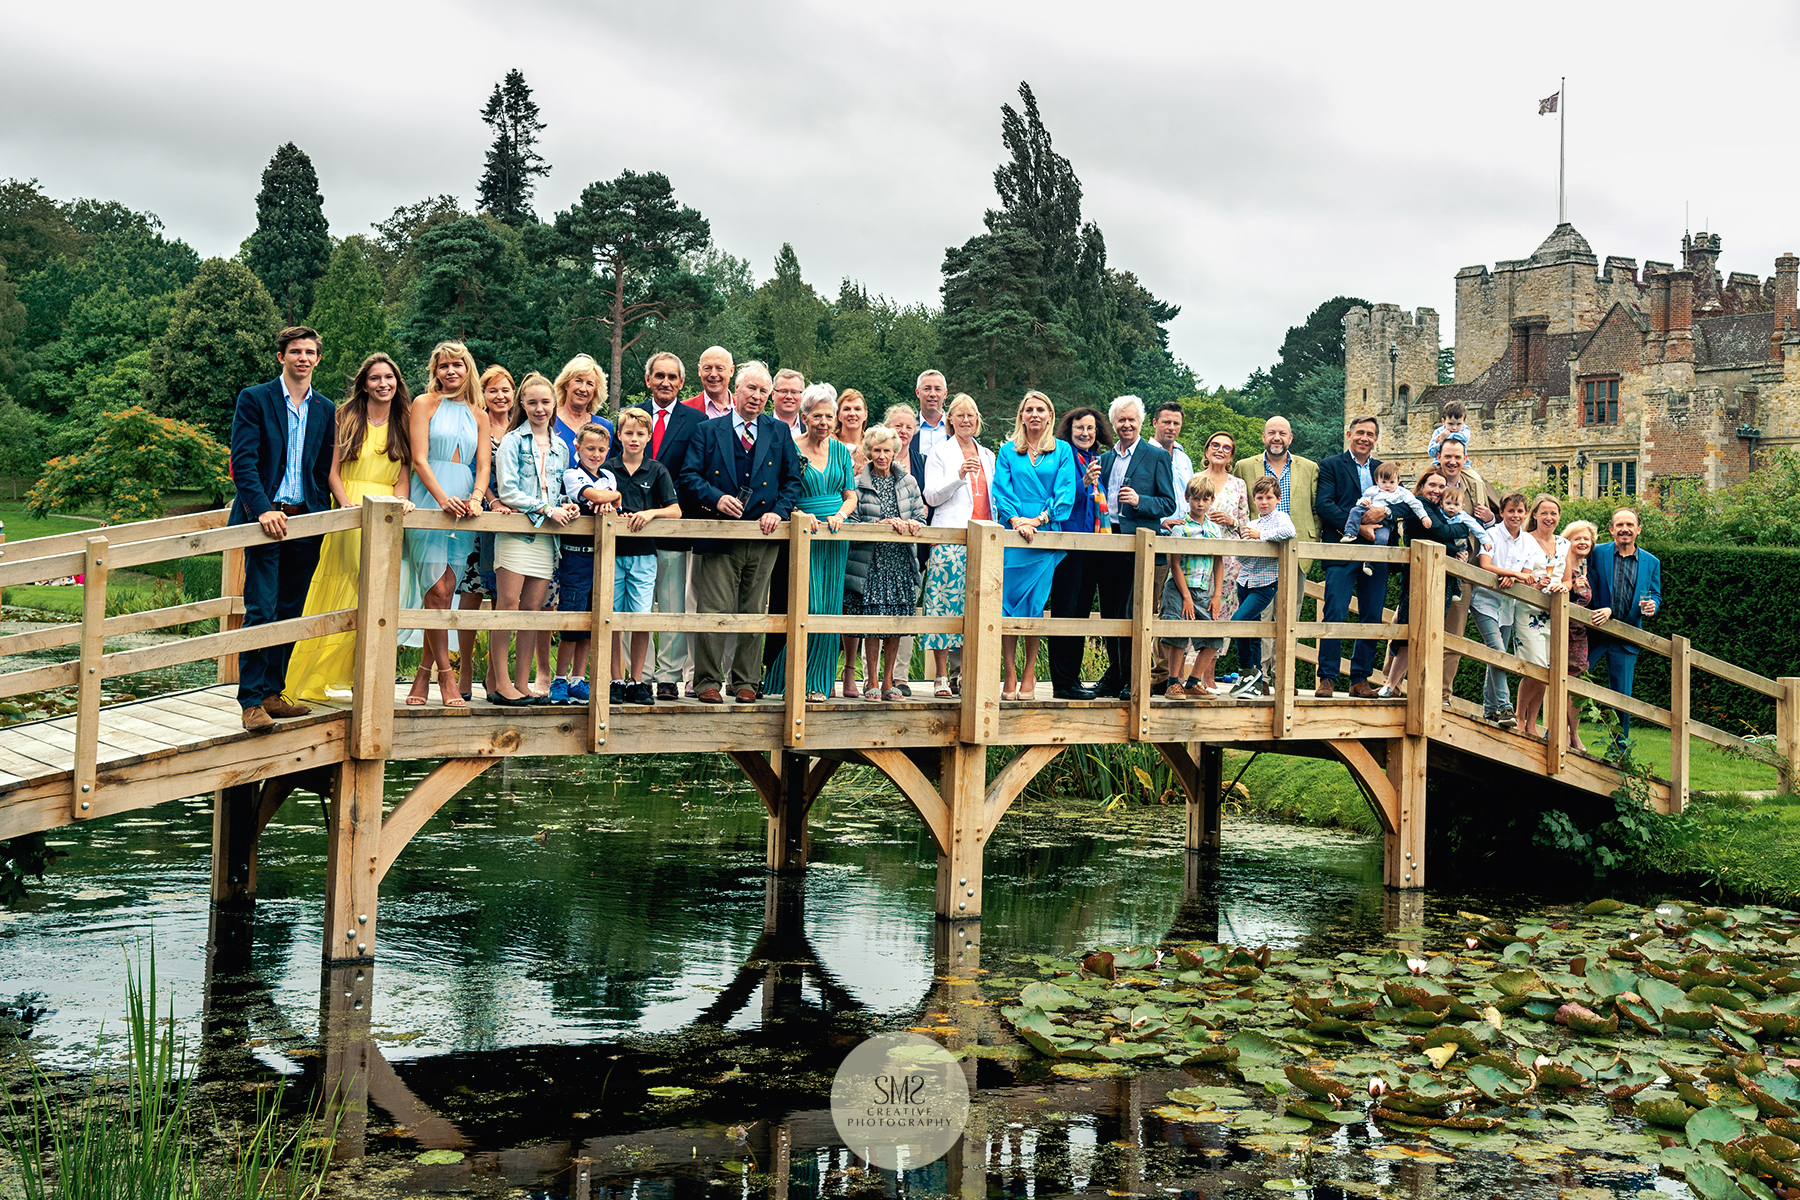 Birthday celebrations at Hever Castle in August 2018.